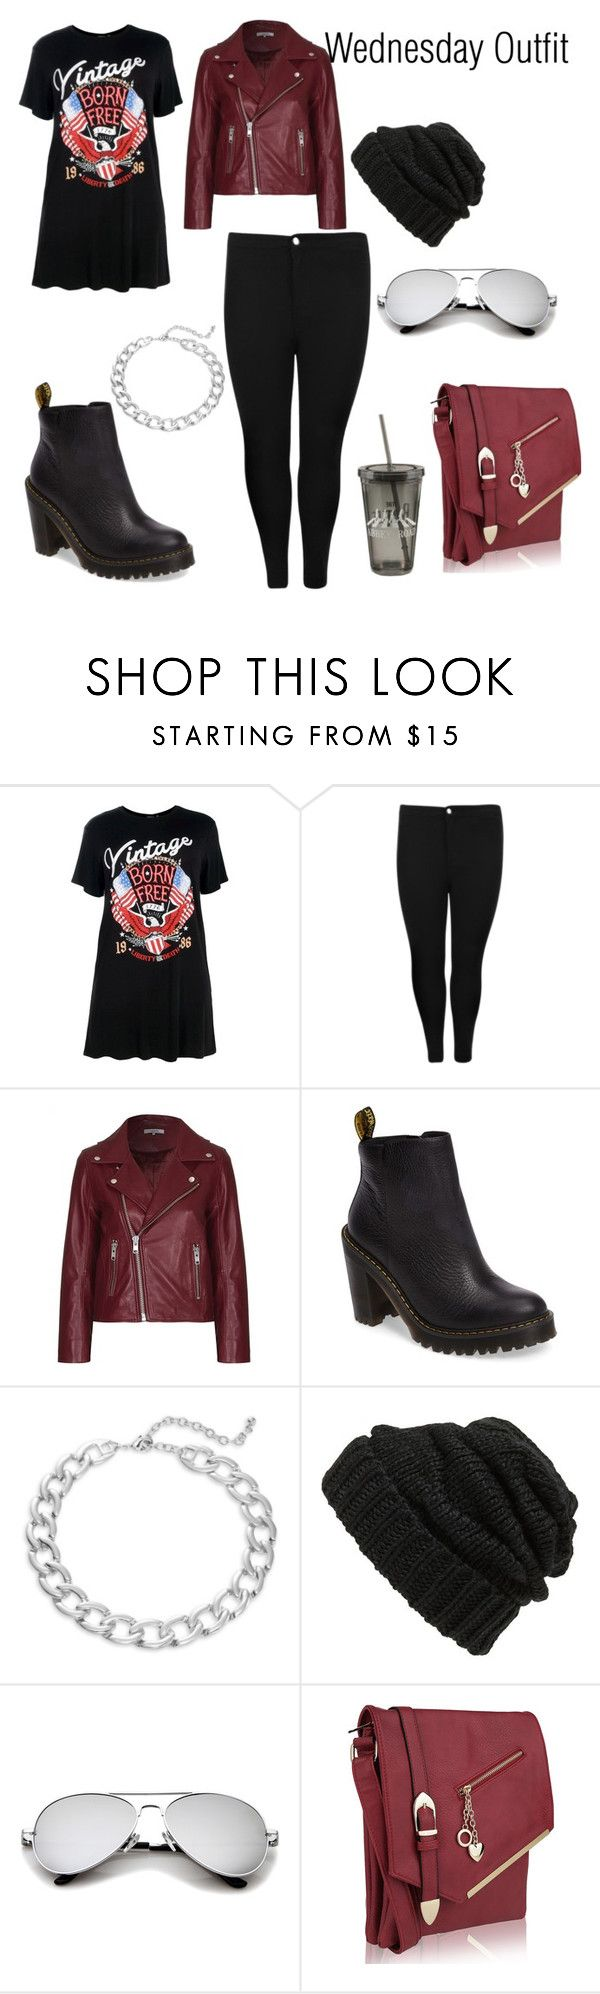 """""""Wednesday Outfit"""" by neonangel92 on Polyvore featuring Boohoo, Ganni, Dr. Martens, Design Lab, Leith and MKF Collection"""